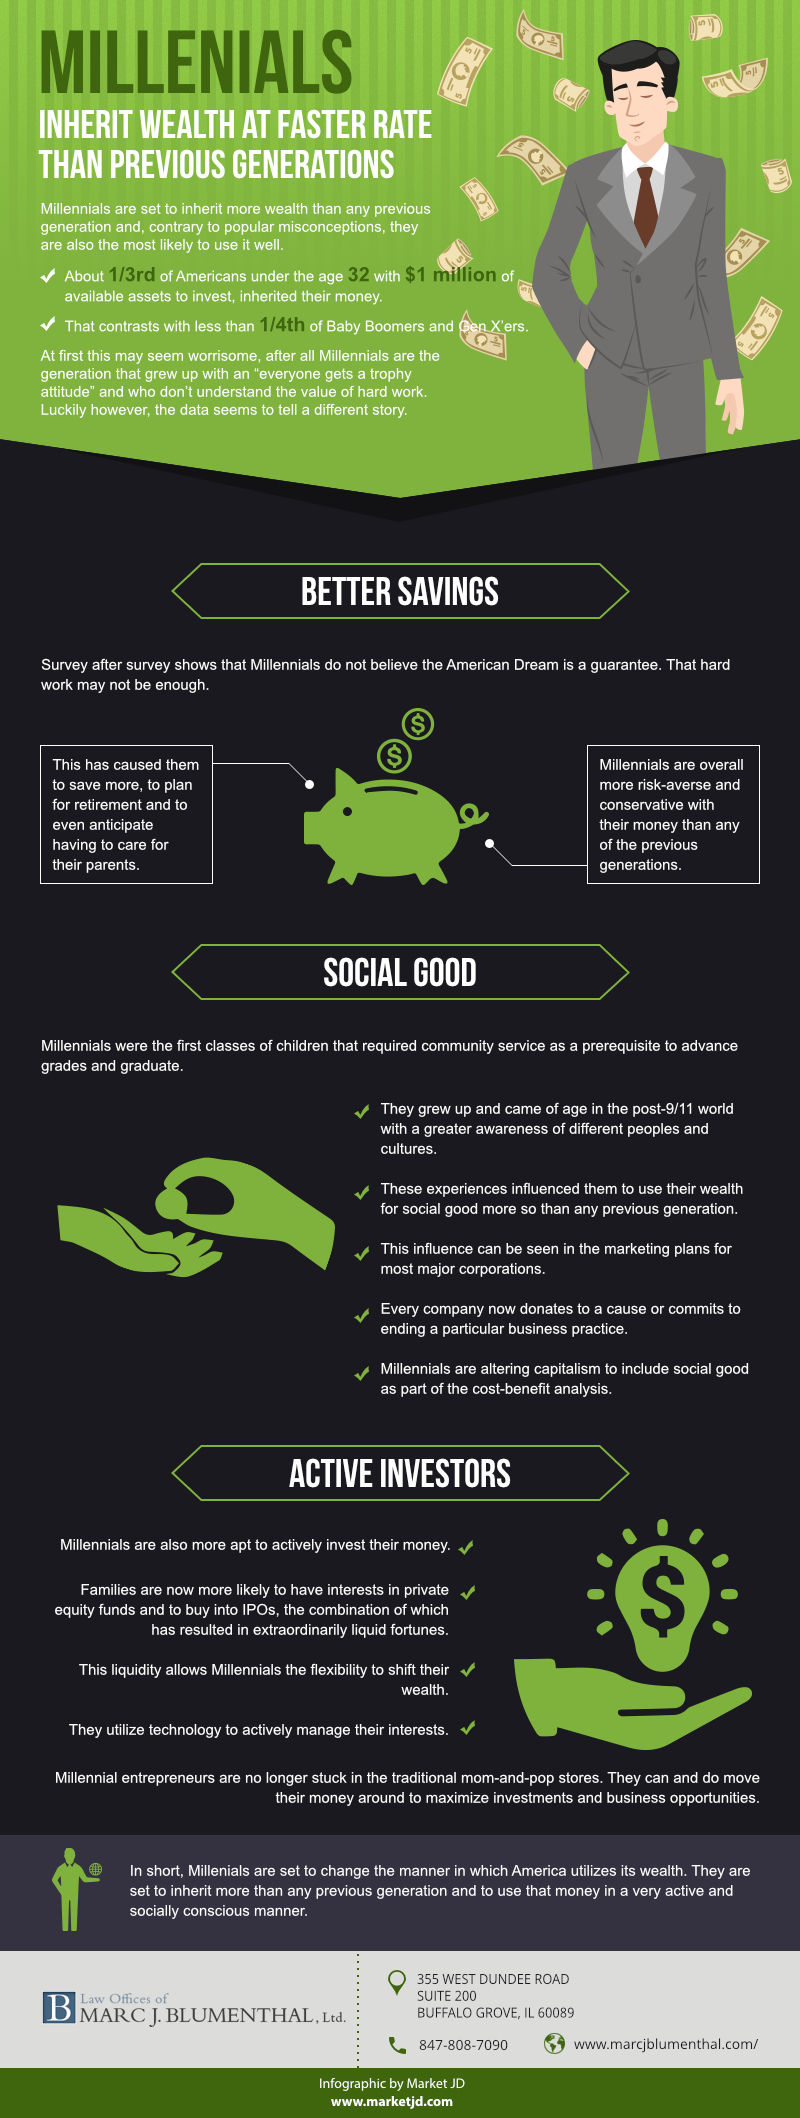 infographic_Millenials inherit wealth faster than previous generations